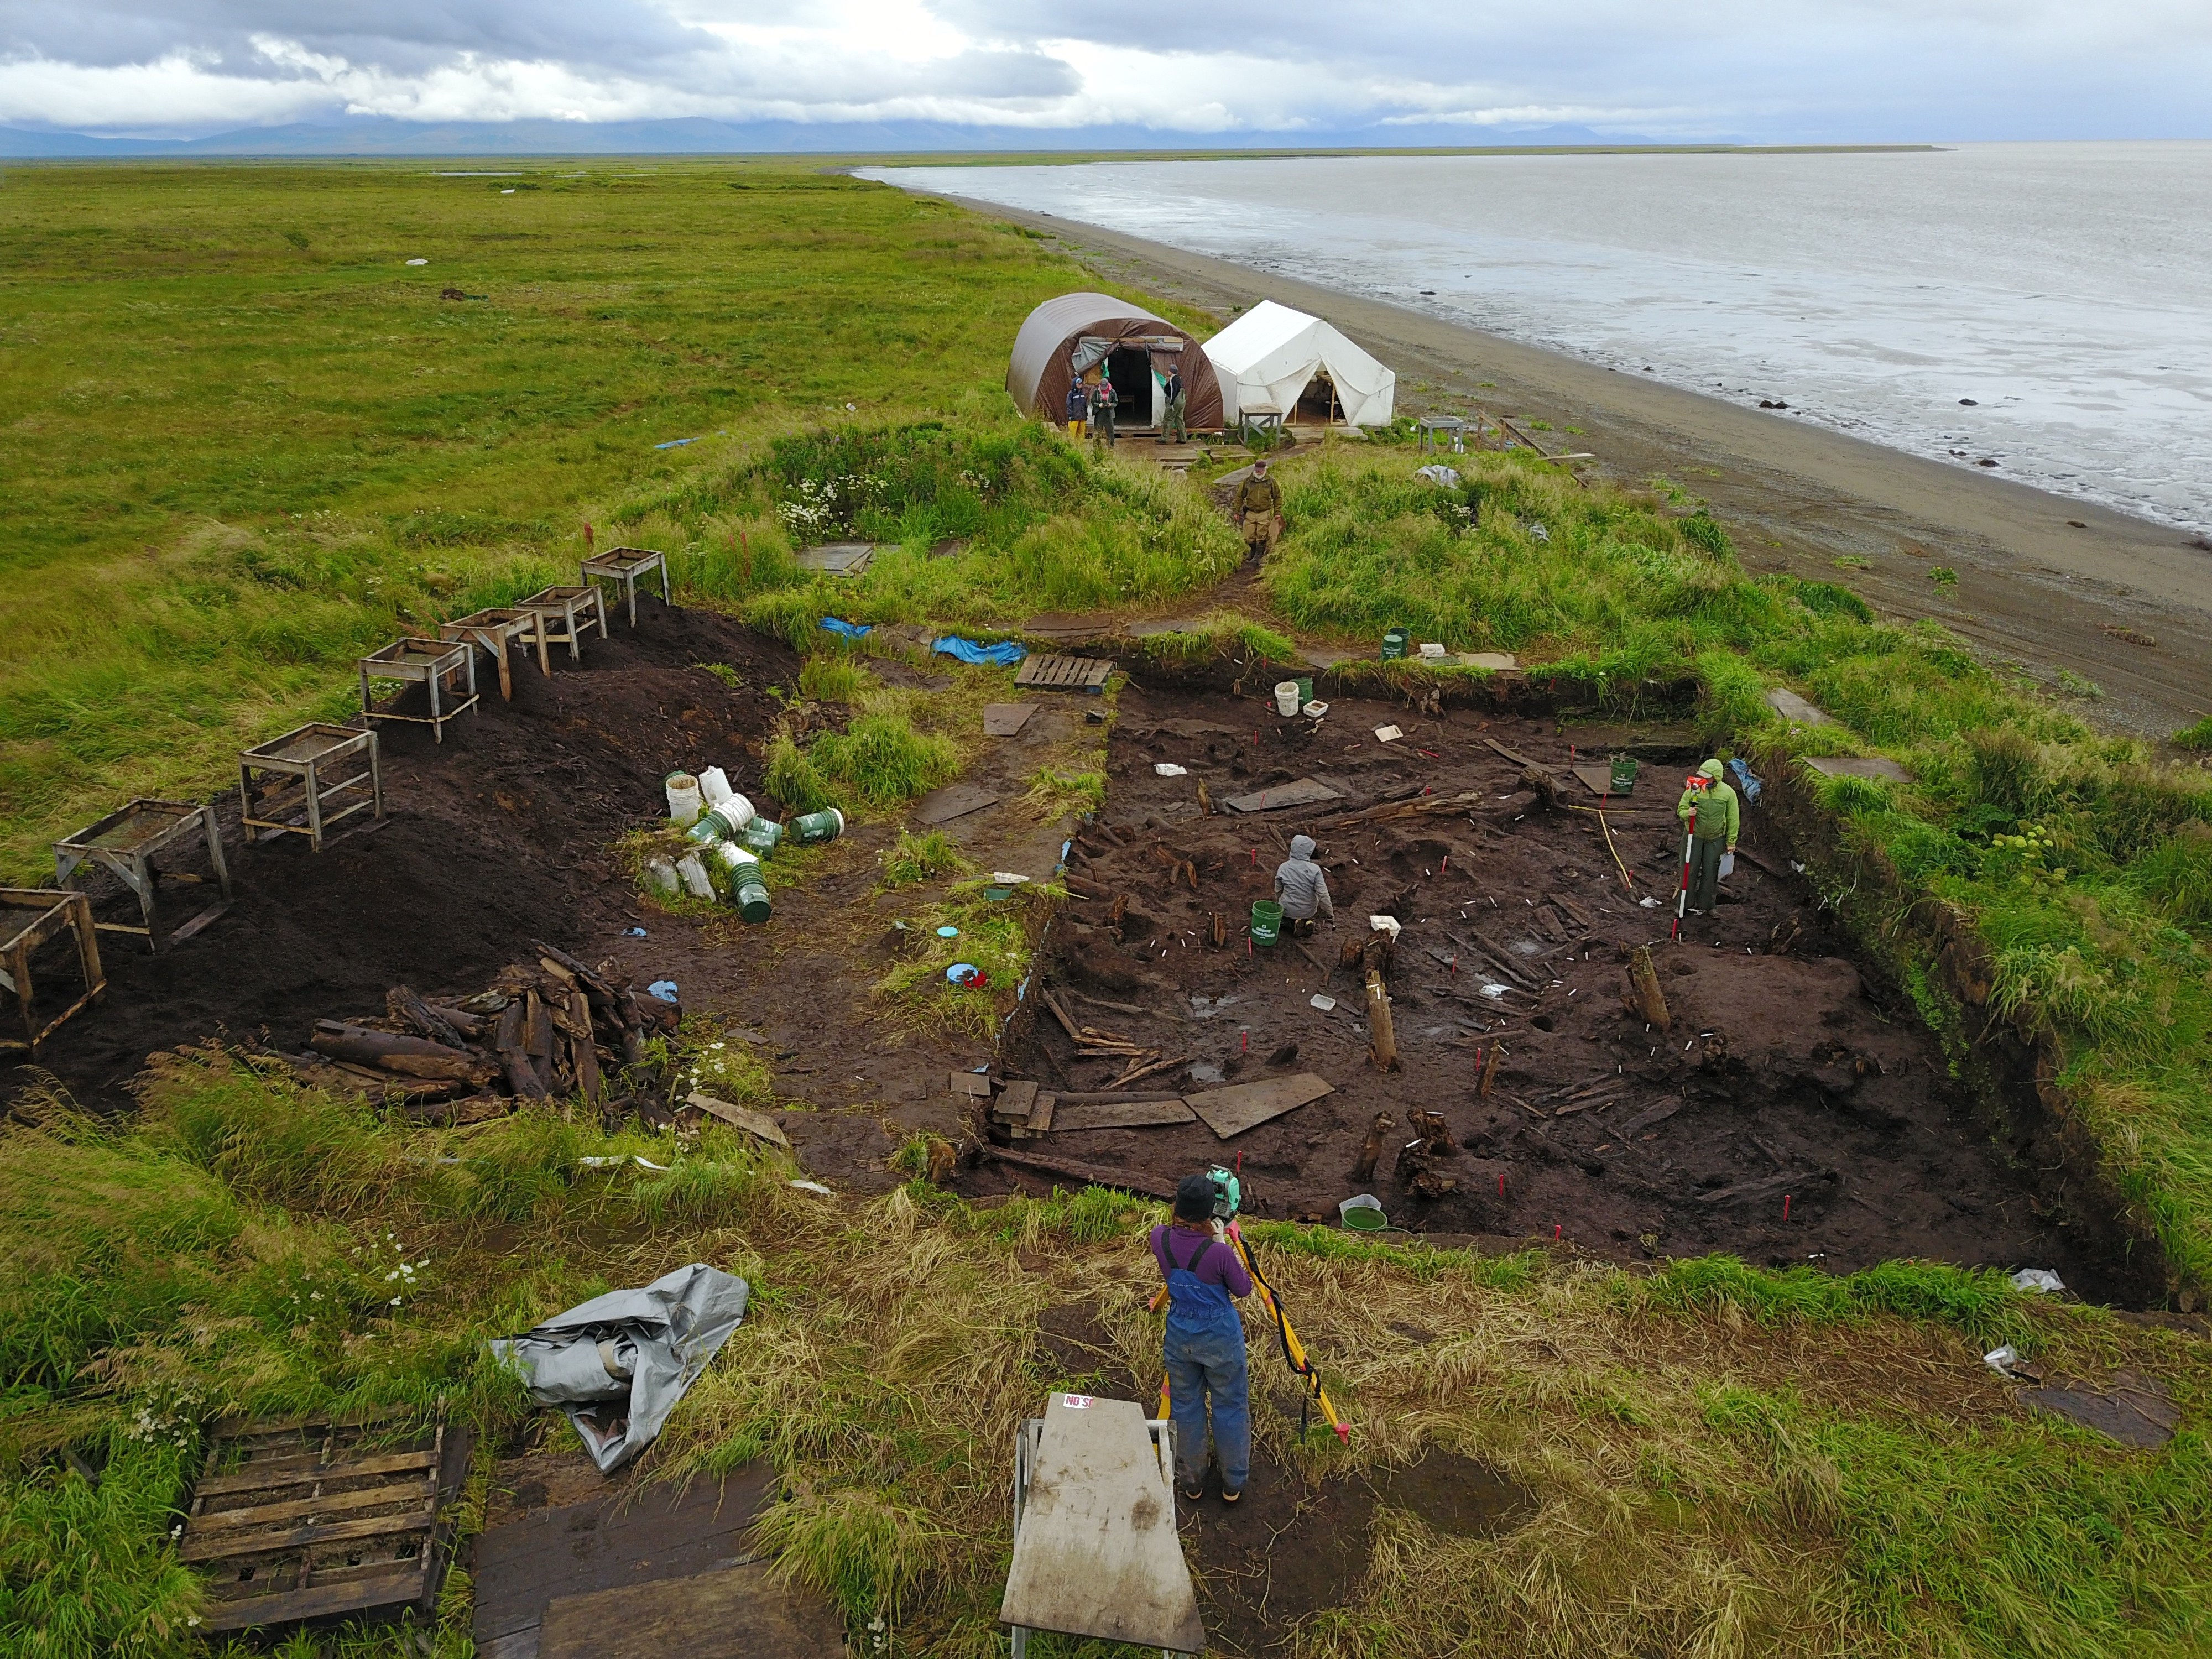 Report calls for 'immediate action' to save archeological sites threatened by climate change